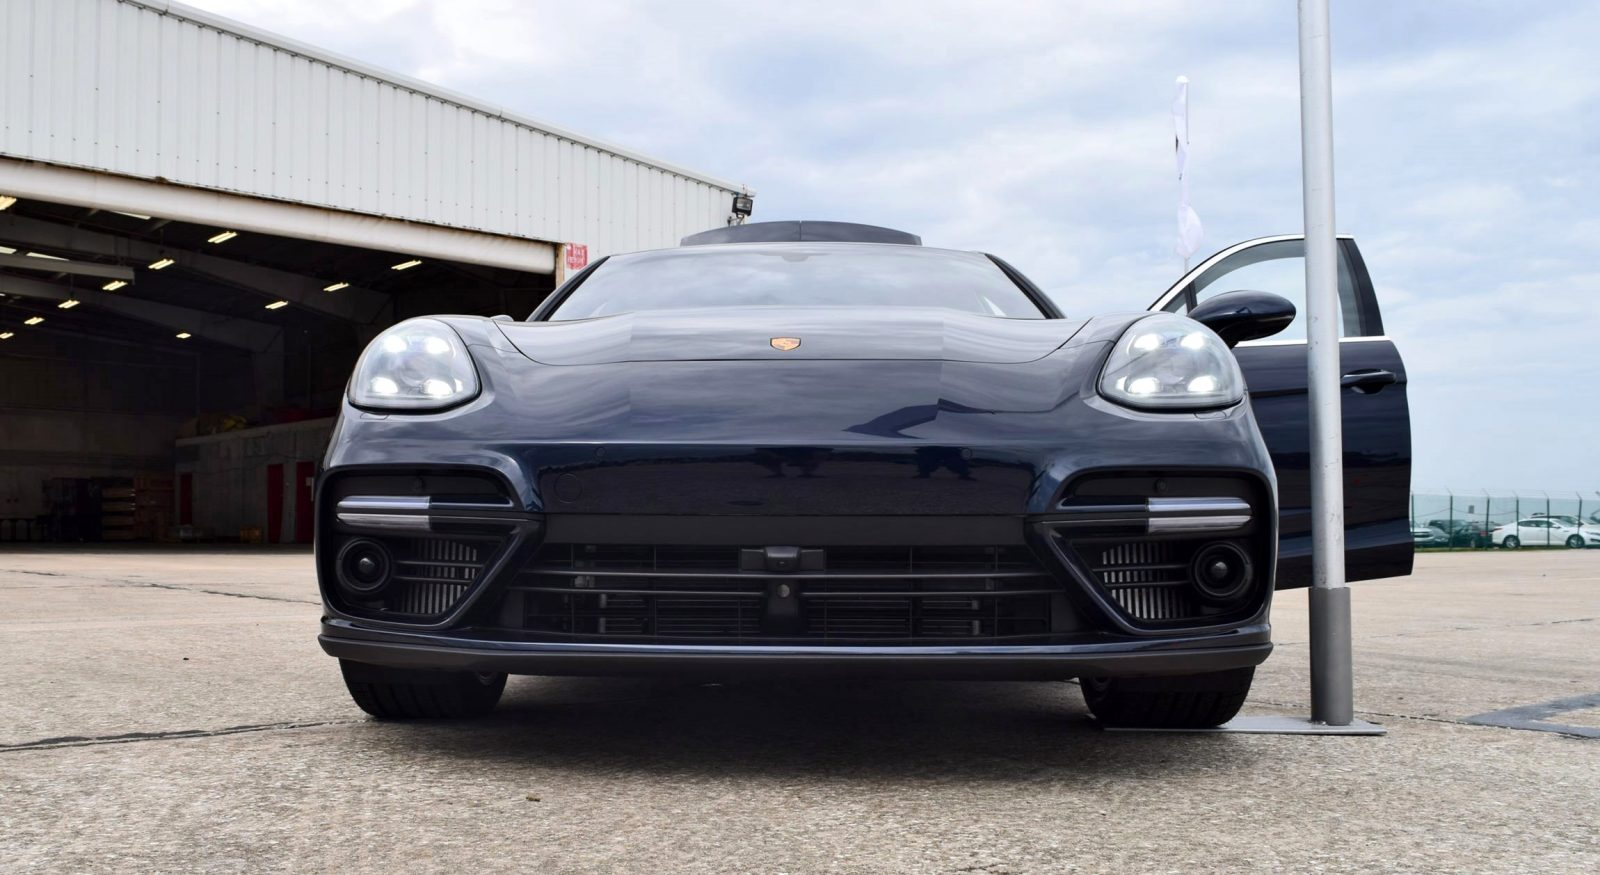 2017 Porsche Panamera TURBO - Startup/Exhaust Video + 44 Photos